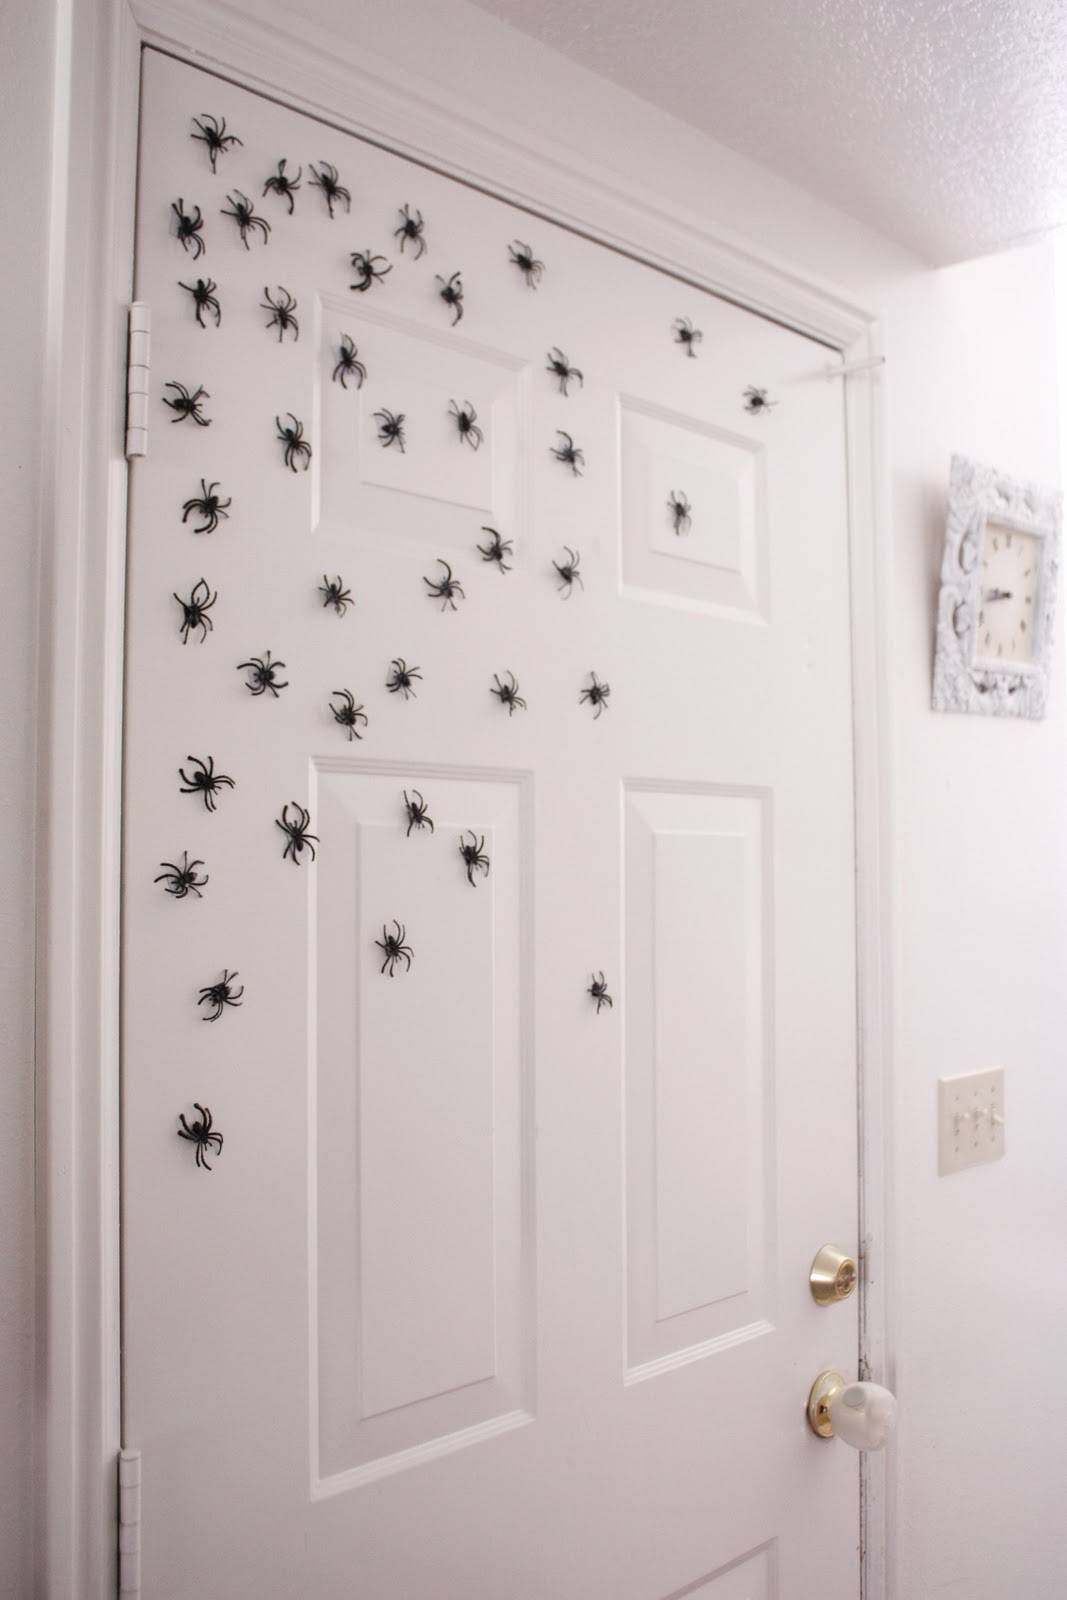 I ended up with about 40-45 spiders for a creepy crawly spider invasion. & Halloween Magnetic Spiders Pezcame.Com